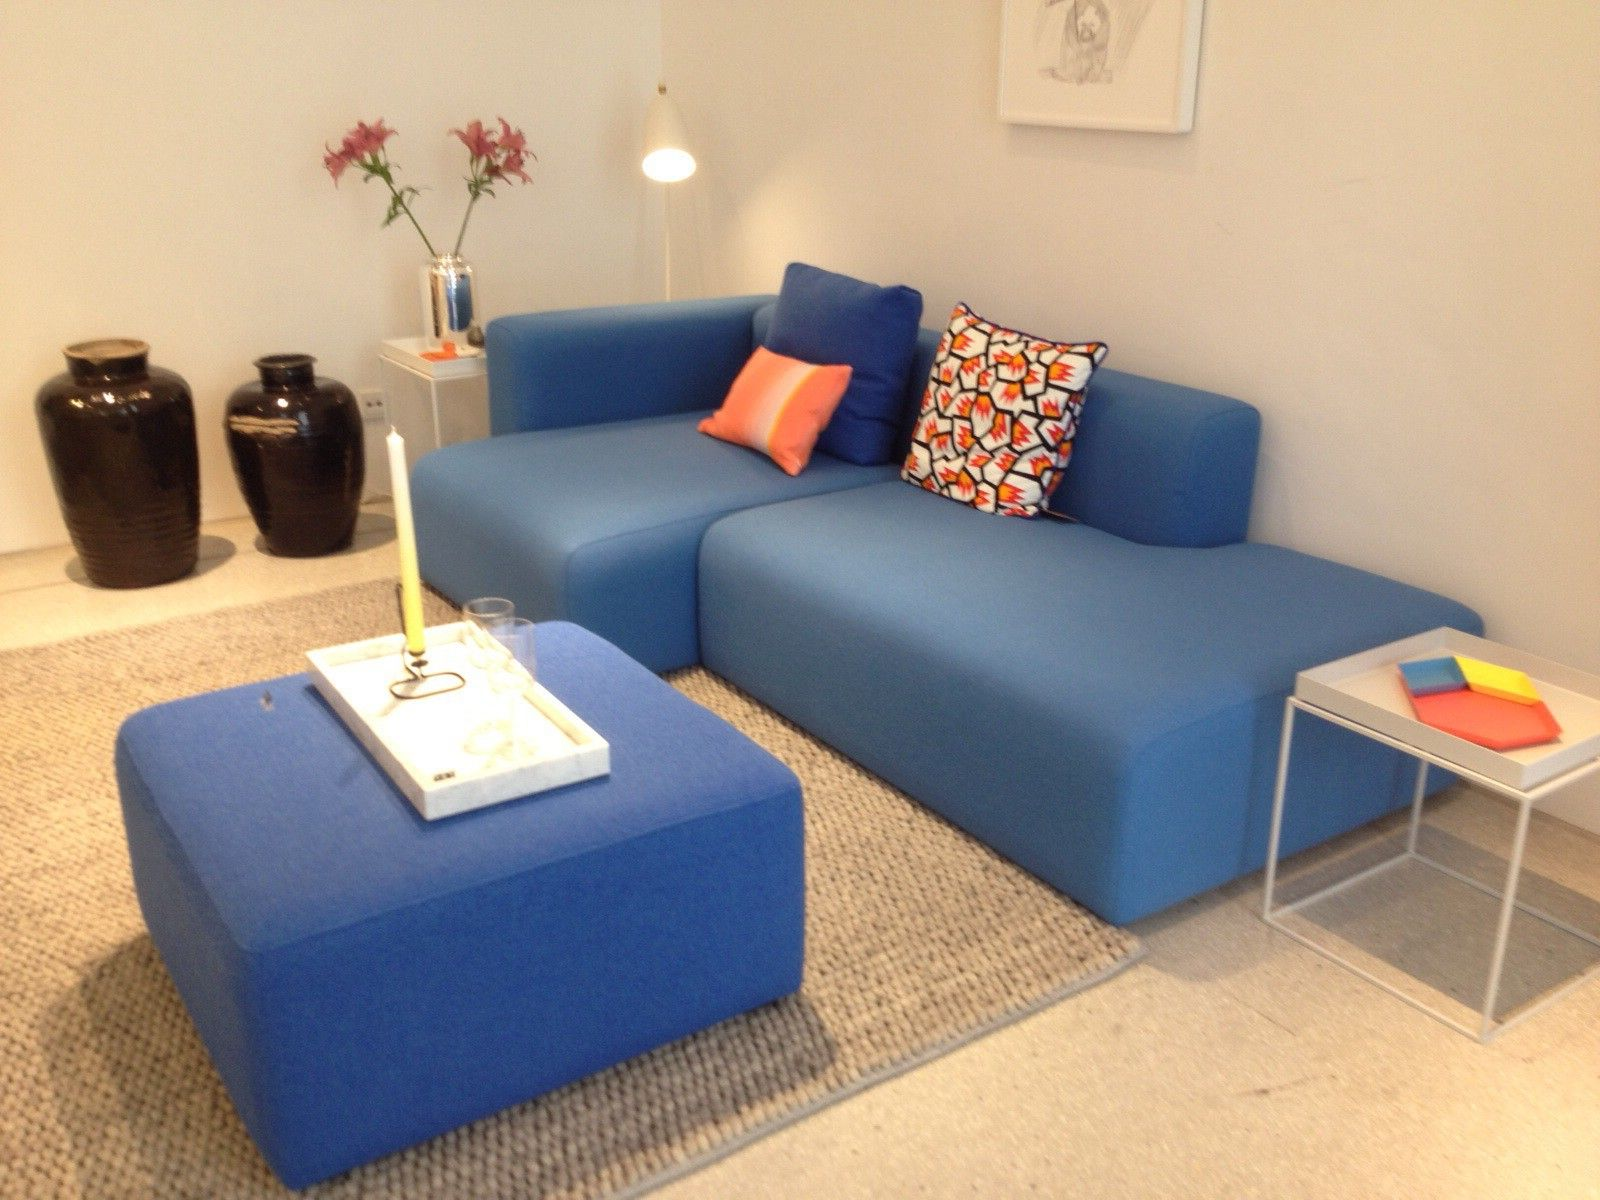 mags sofa - Google Search | Family room ideas | Pinterest | Living ...